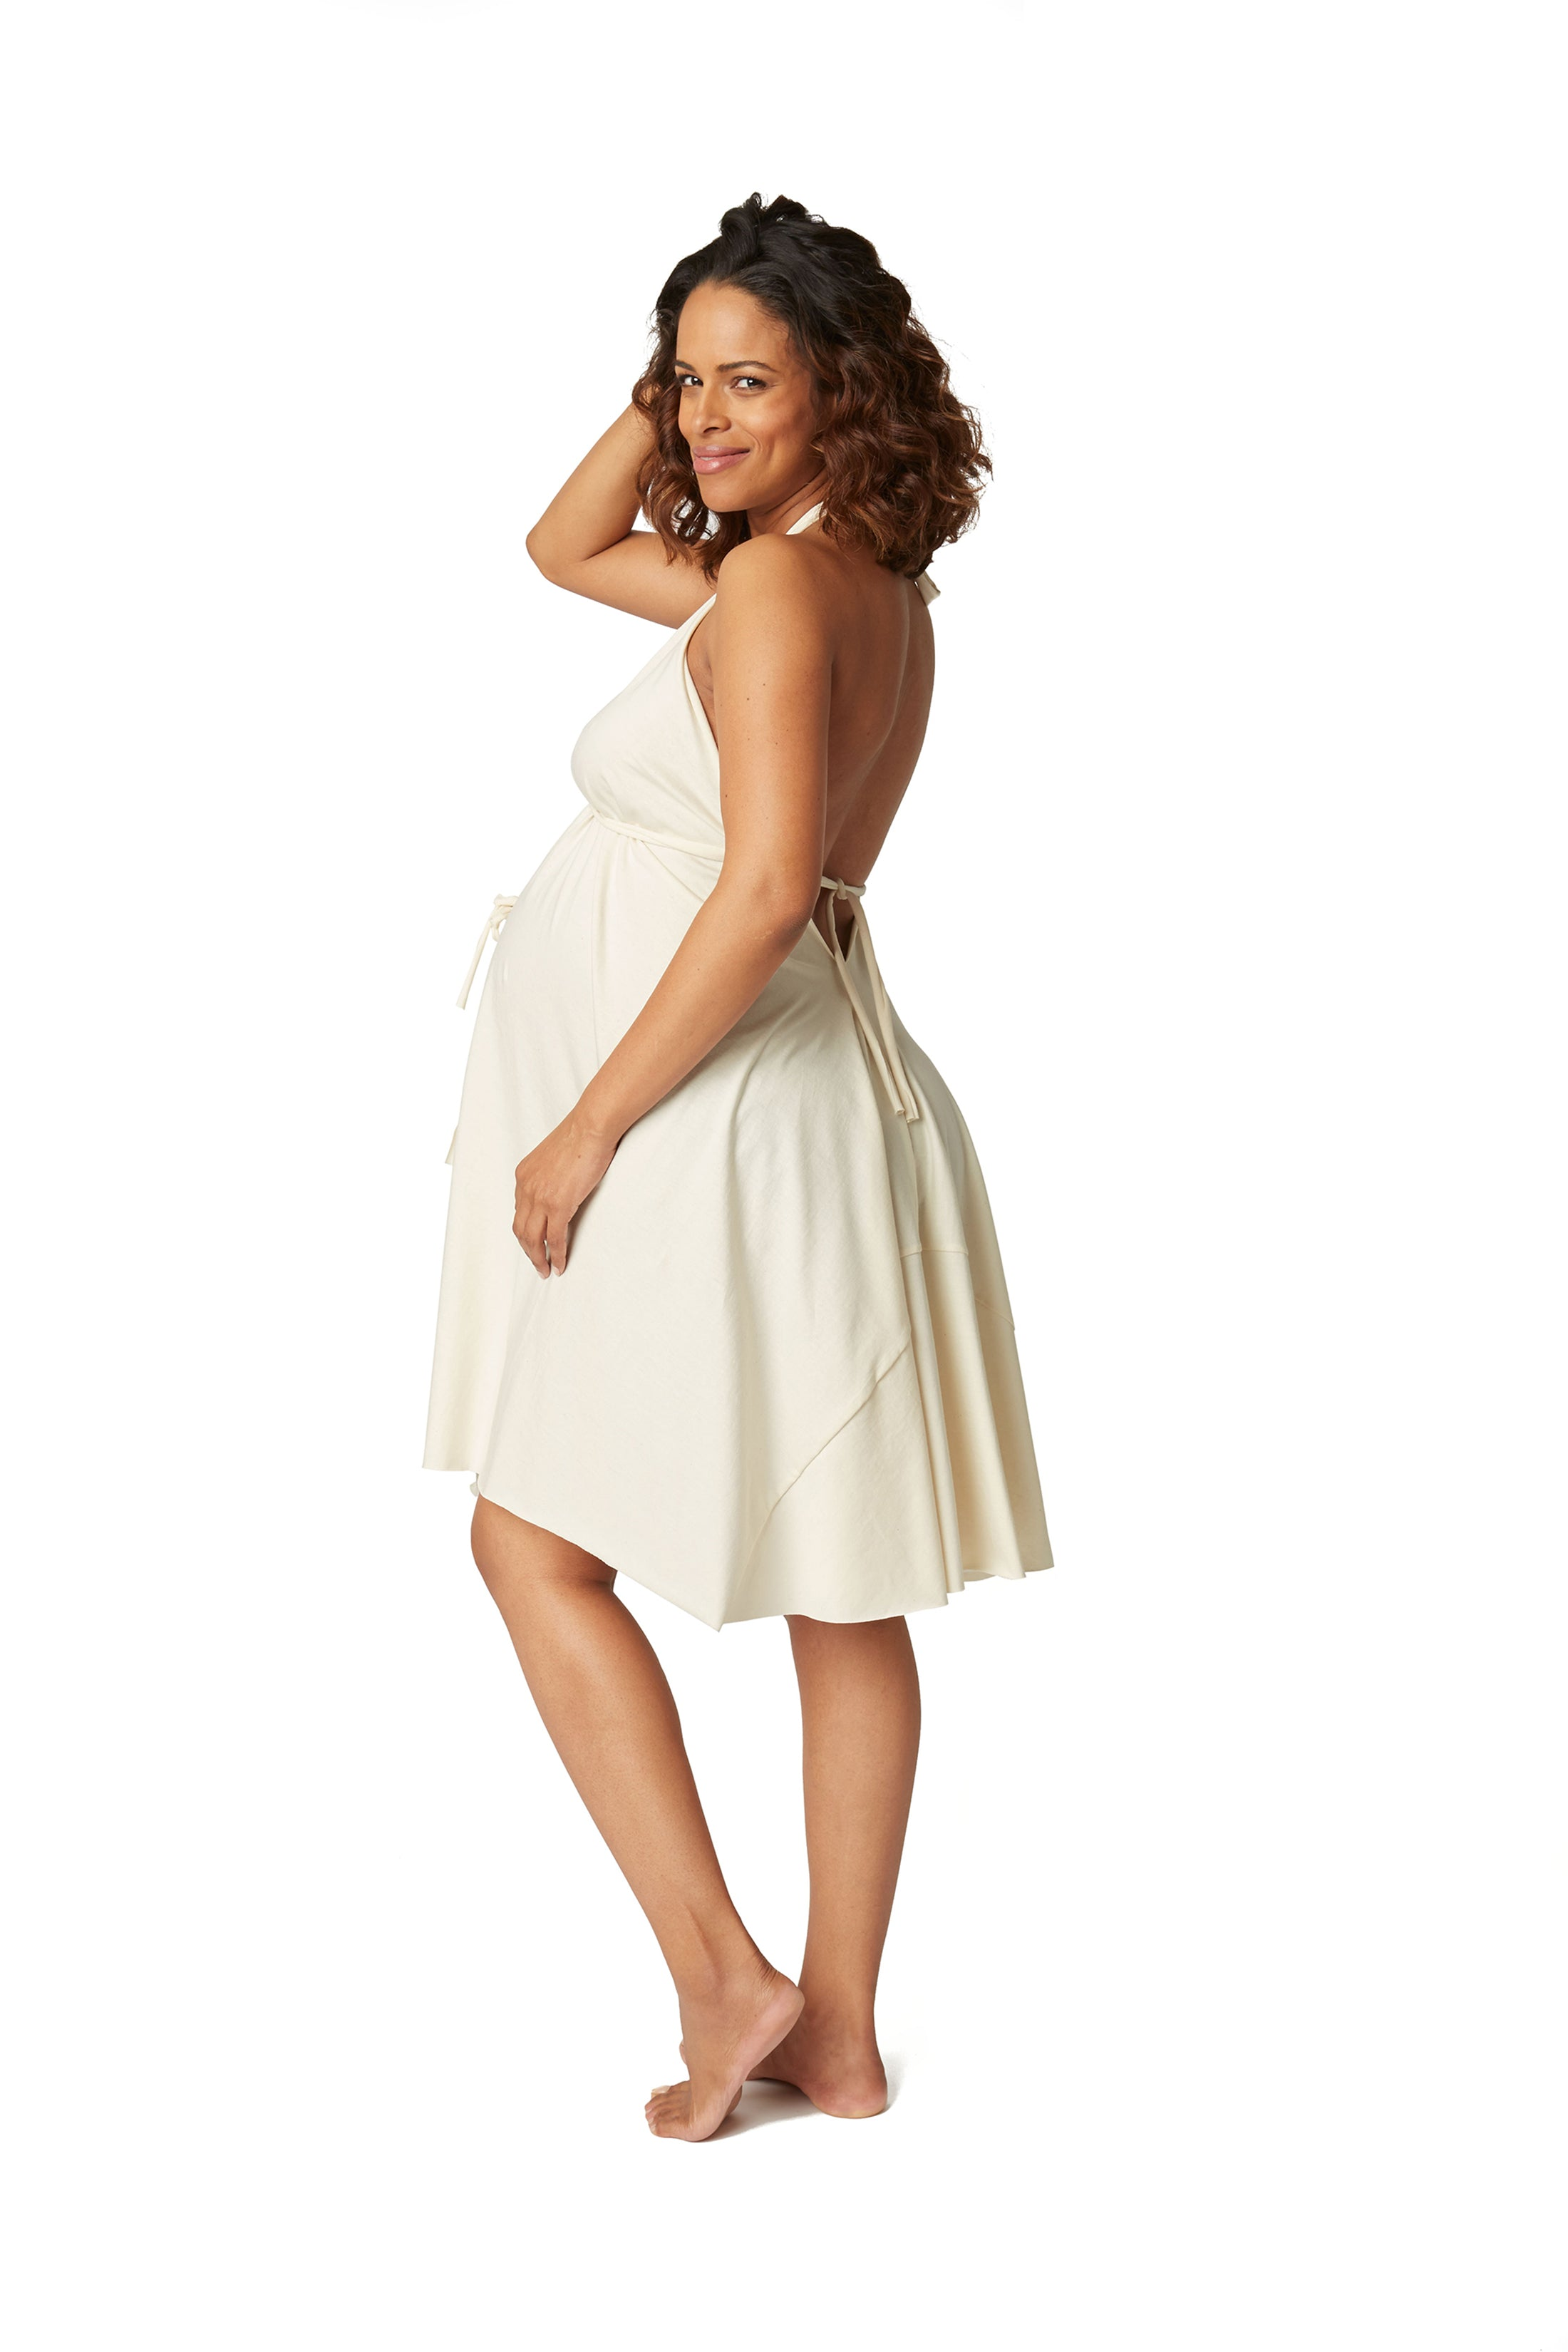 Original Labor & Delivery Gowns – Little Wonder Star